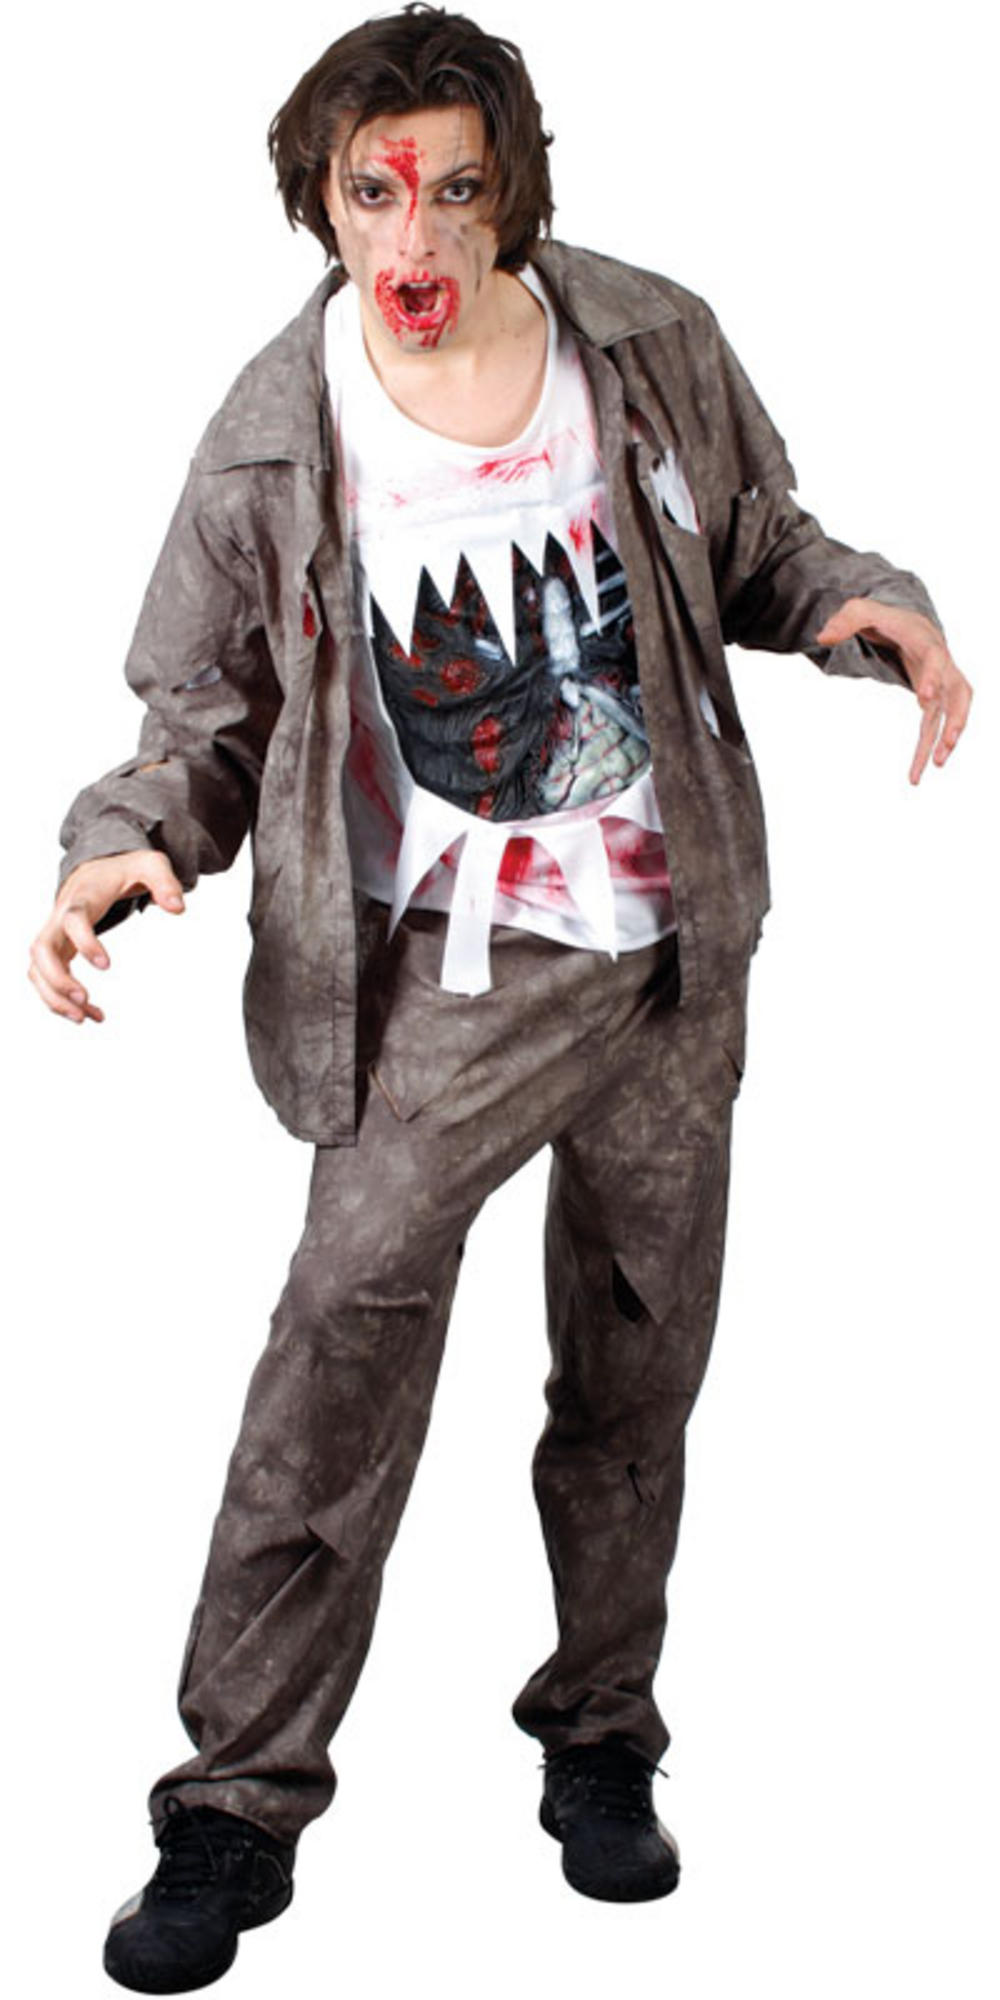 living dead zombie fancy dress halloween horror costume. Black Bedroom Furniture Sets. Home Design Ideas